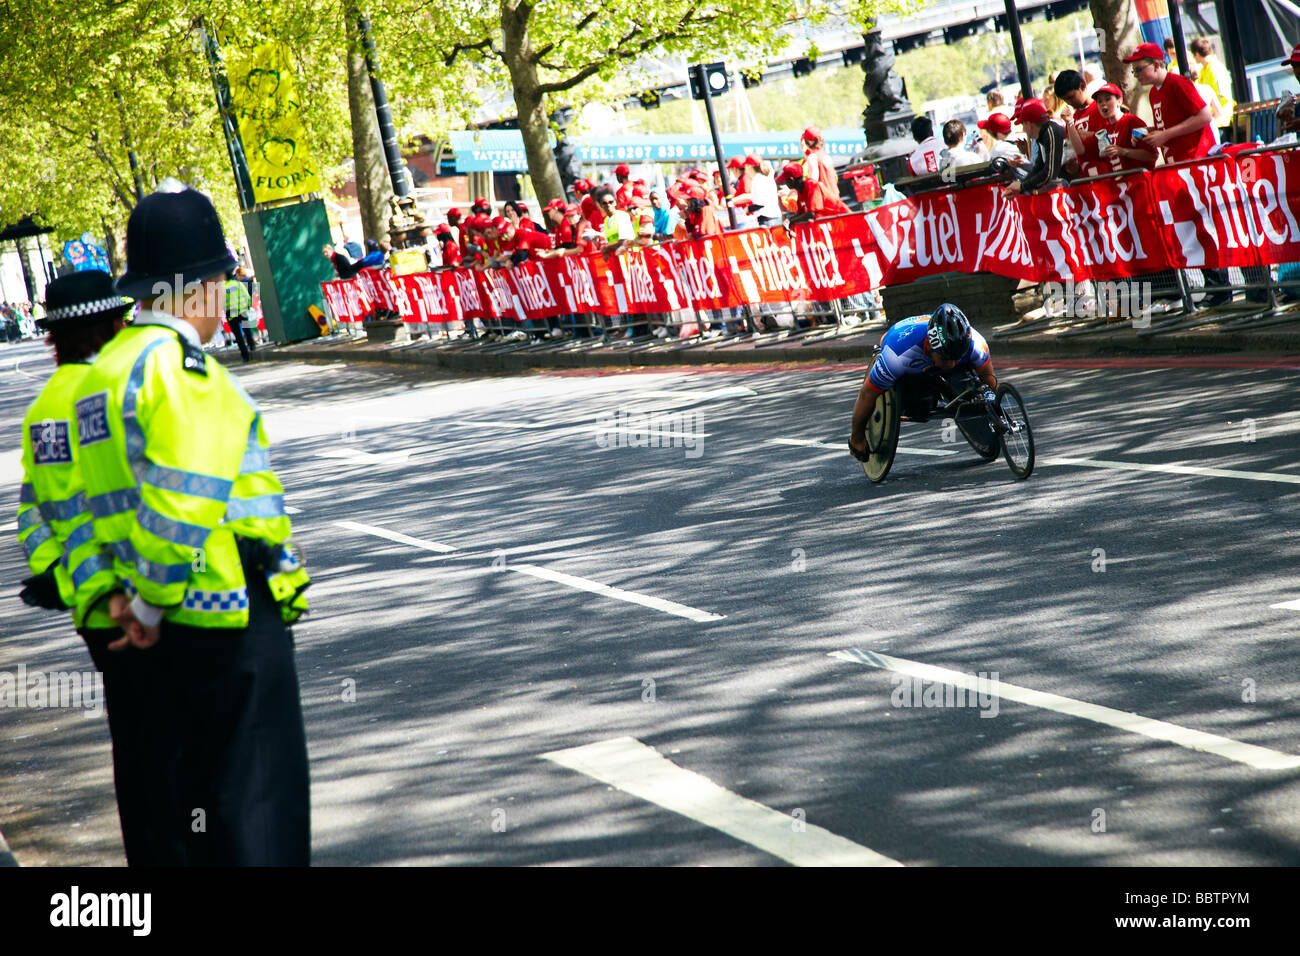 paraplegic athelete, London marathon - Stock Image